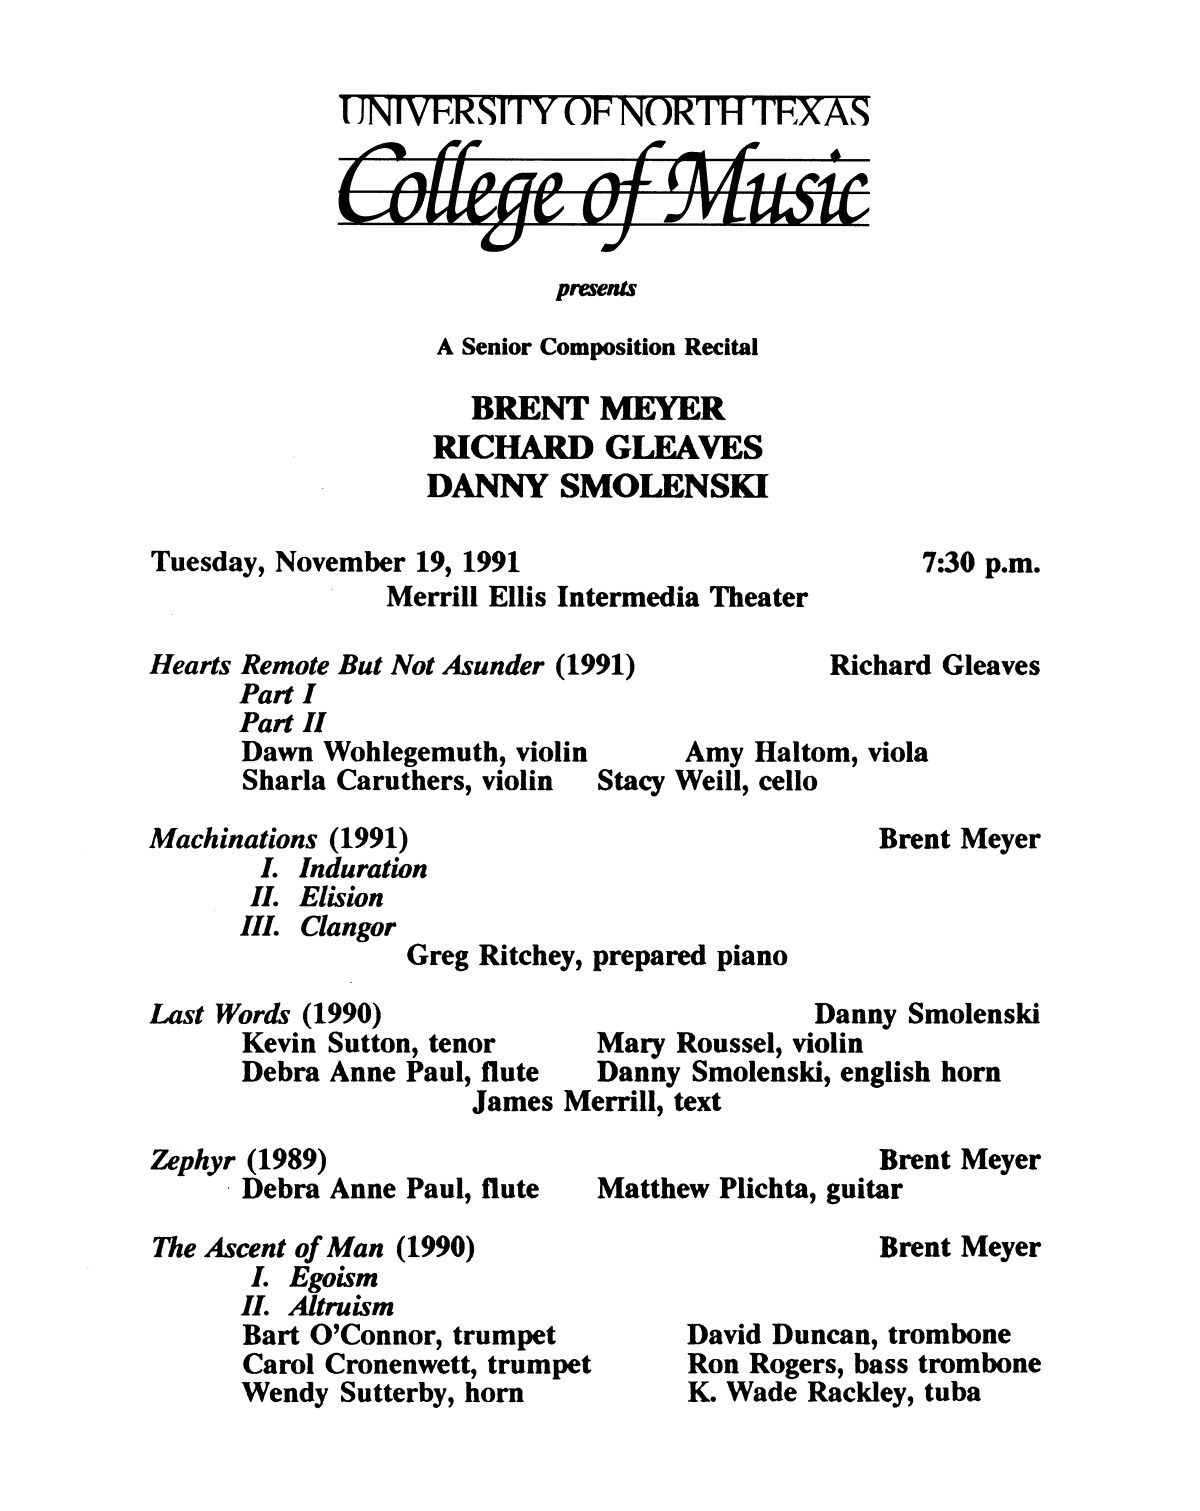 College of Music program book 1991-1992 Student Performances Vol. 2                                                                                                      [Sequence #]: 66 of 310